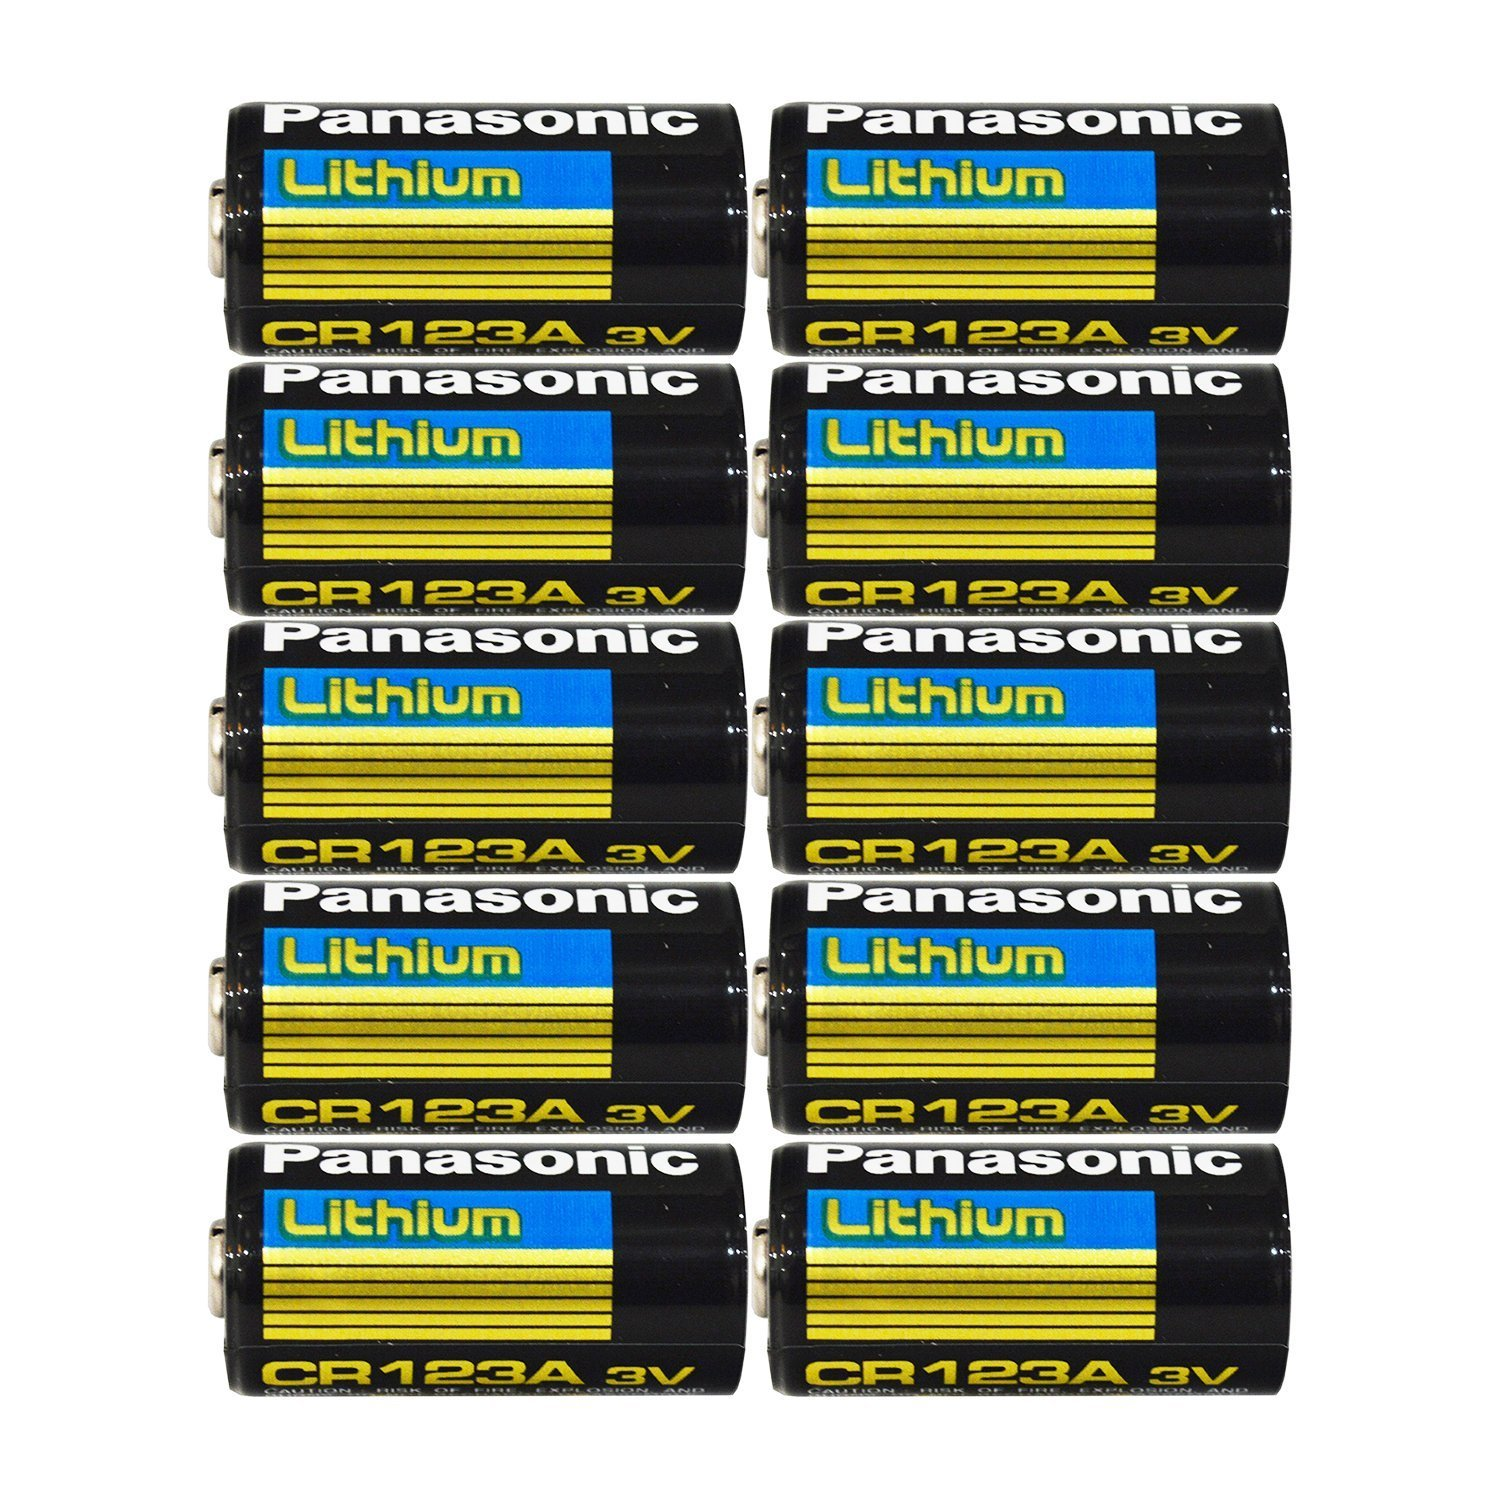 "Panasonic CR123A Lithium 3V Photo Lithium Batteries, 0.67"" Dia x 1.36"" H (17.0 mm x 34.5 mm) (Pack of 10)"